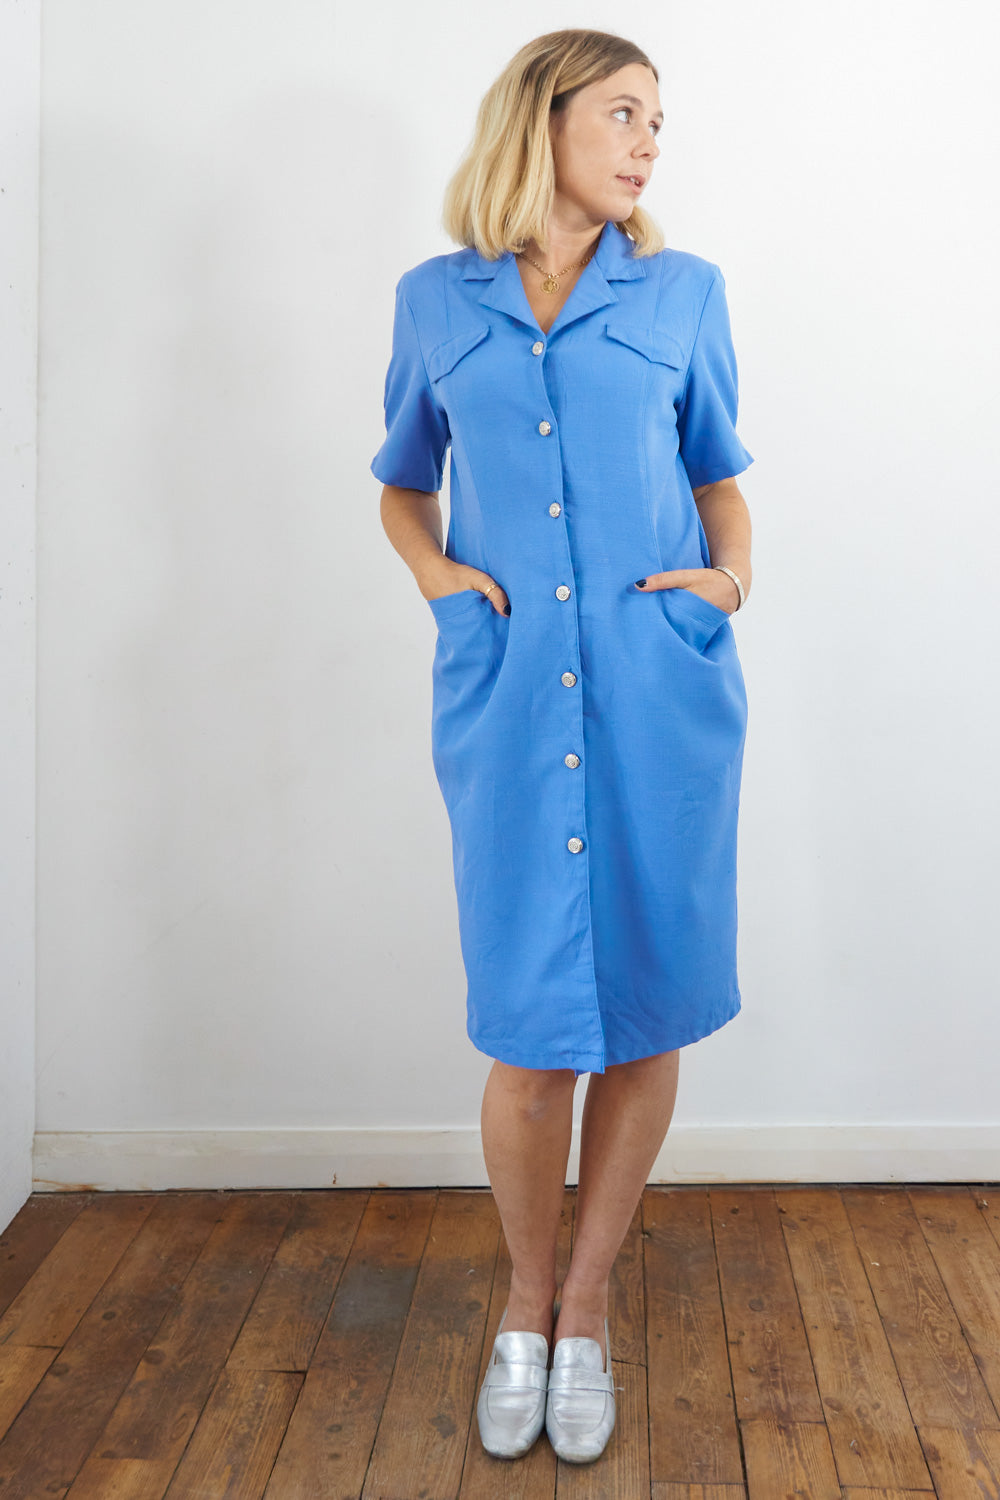 Nice - Vintage 60's Midi Dress in Blue with Silver Buttons - Staying Alive Vintage